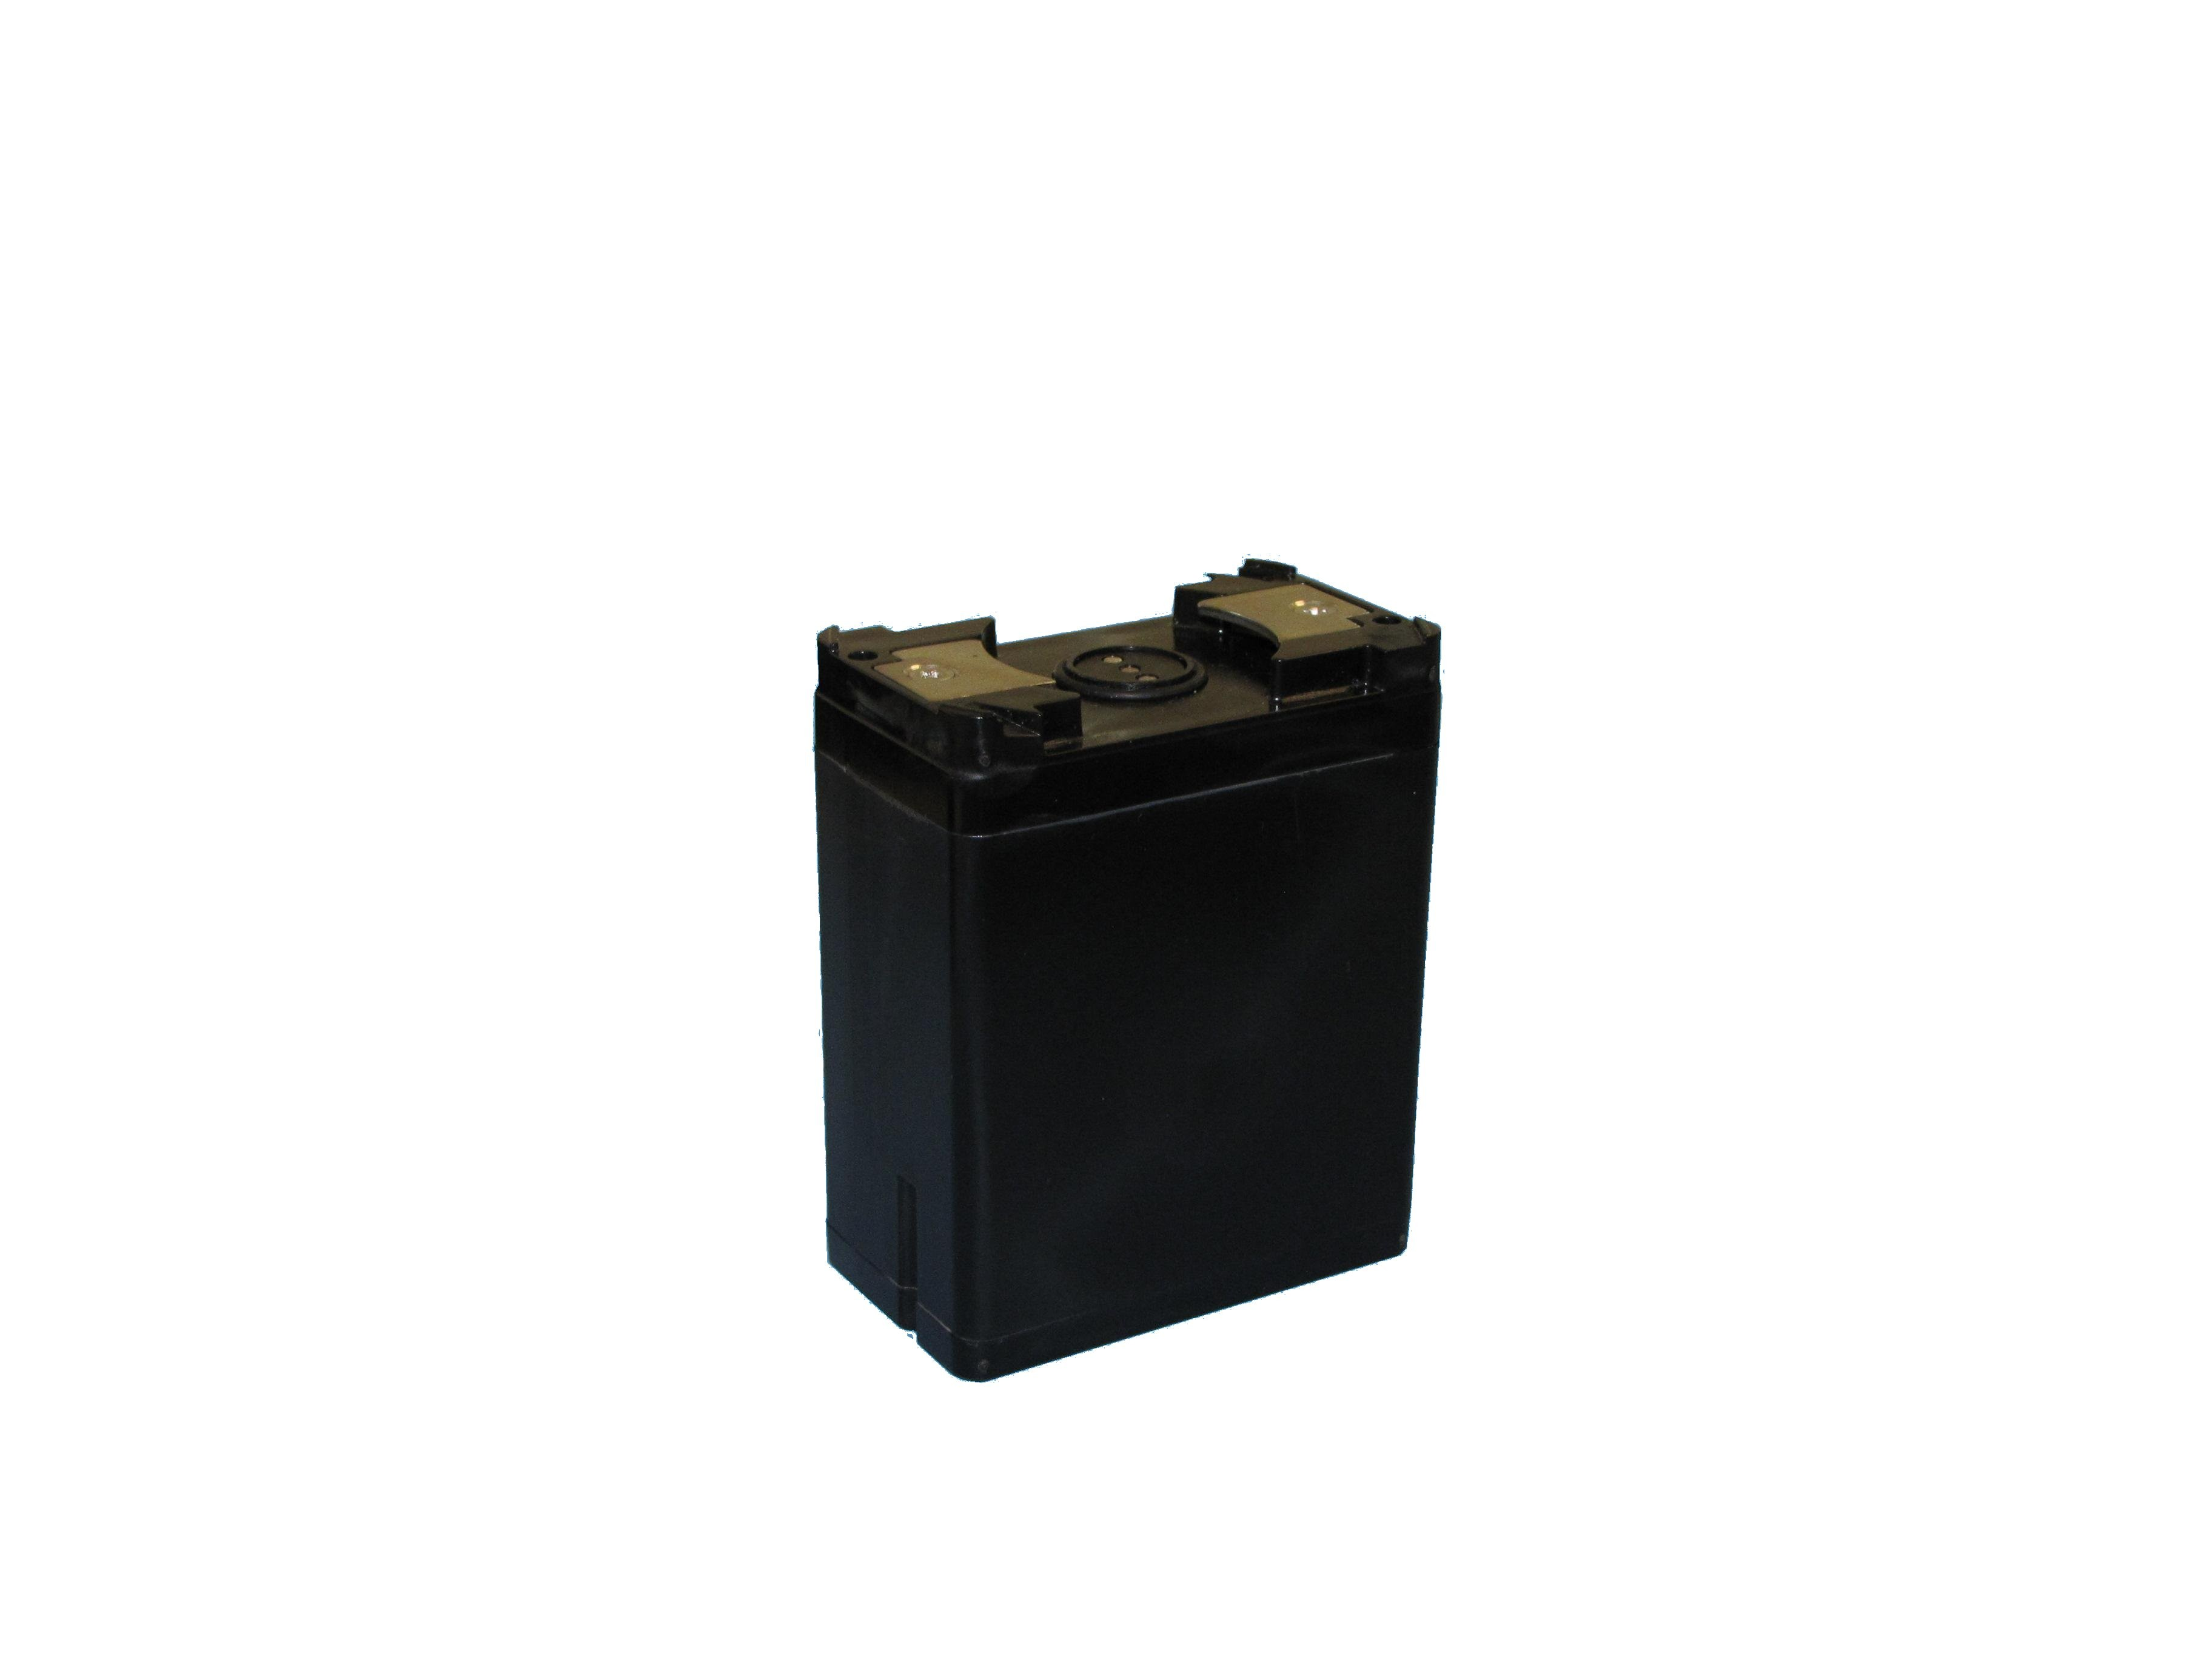 Battery: BT-70716BE (ALI-130)